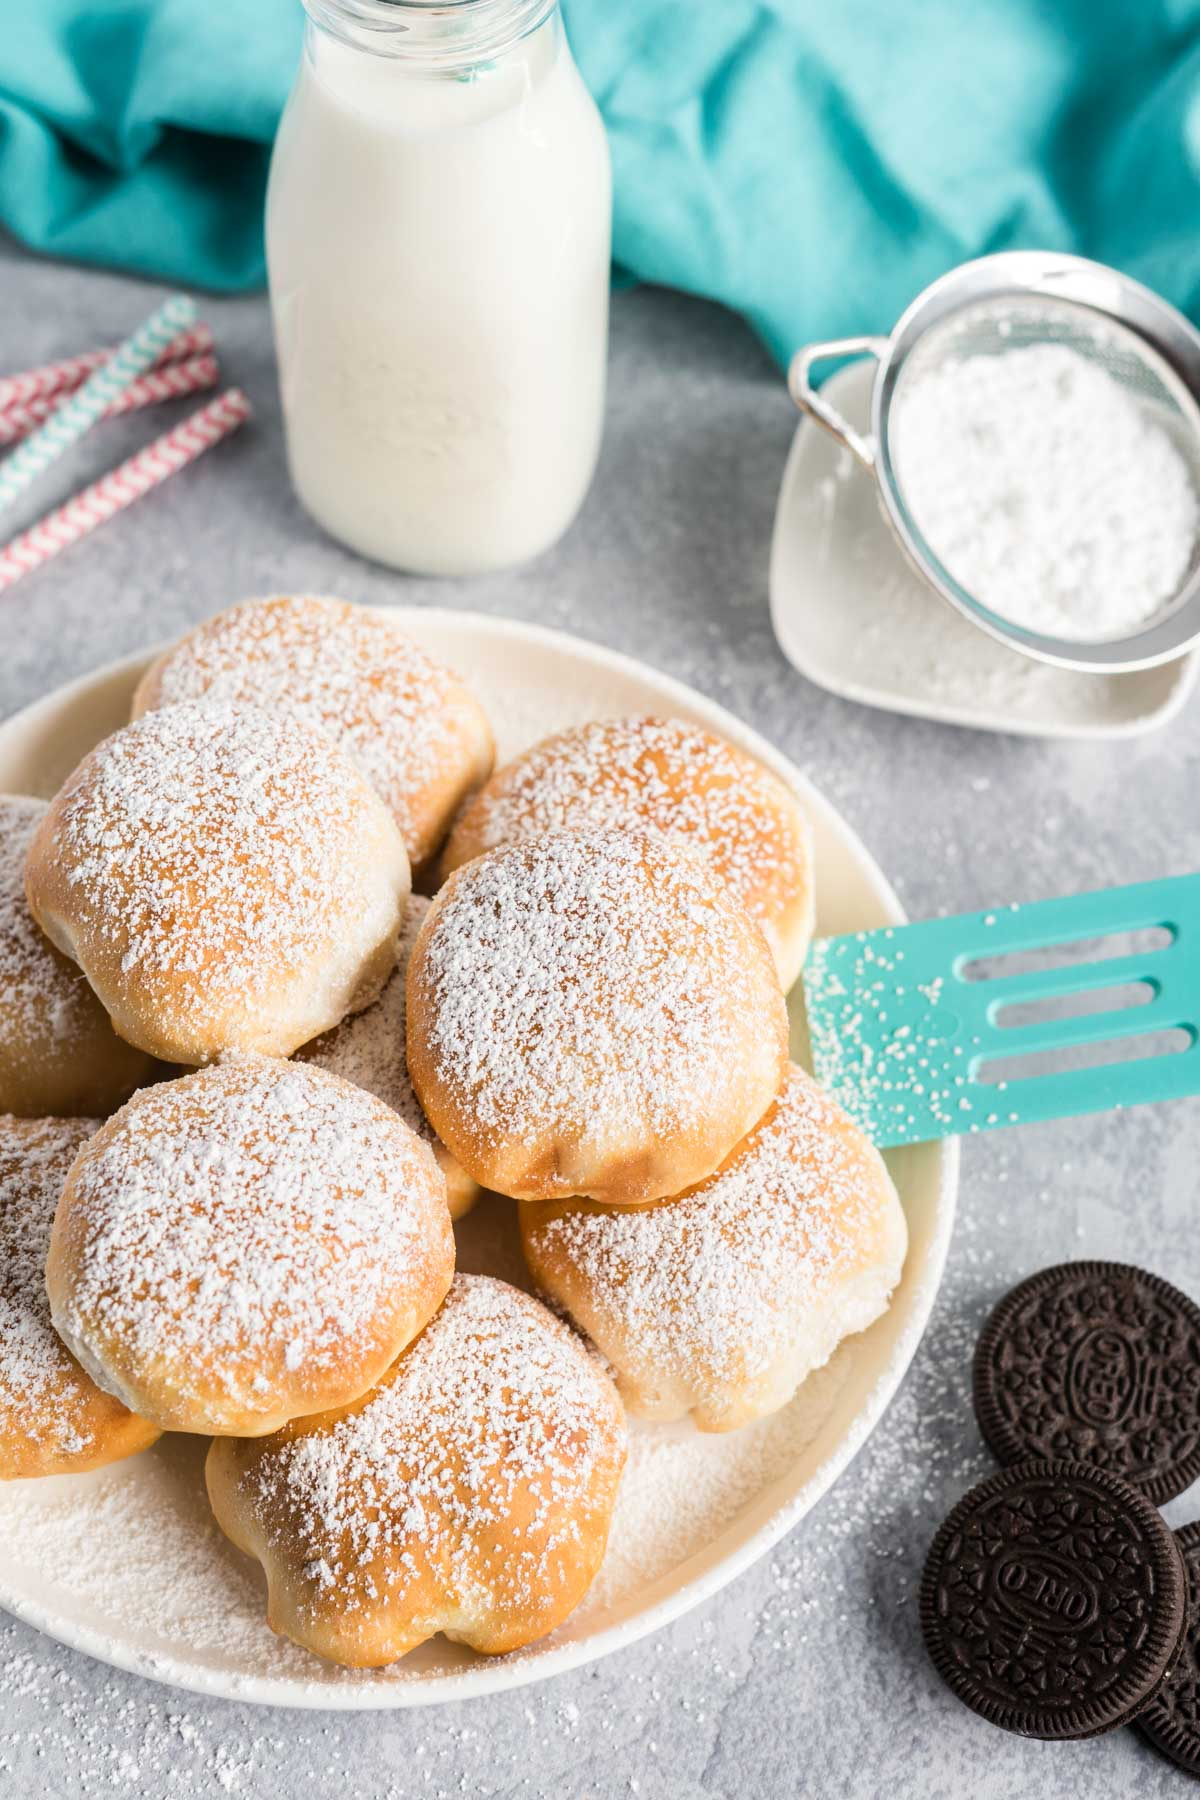 A plate of air fried Oreos with a glass of milk.